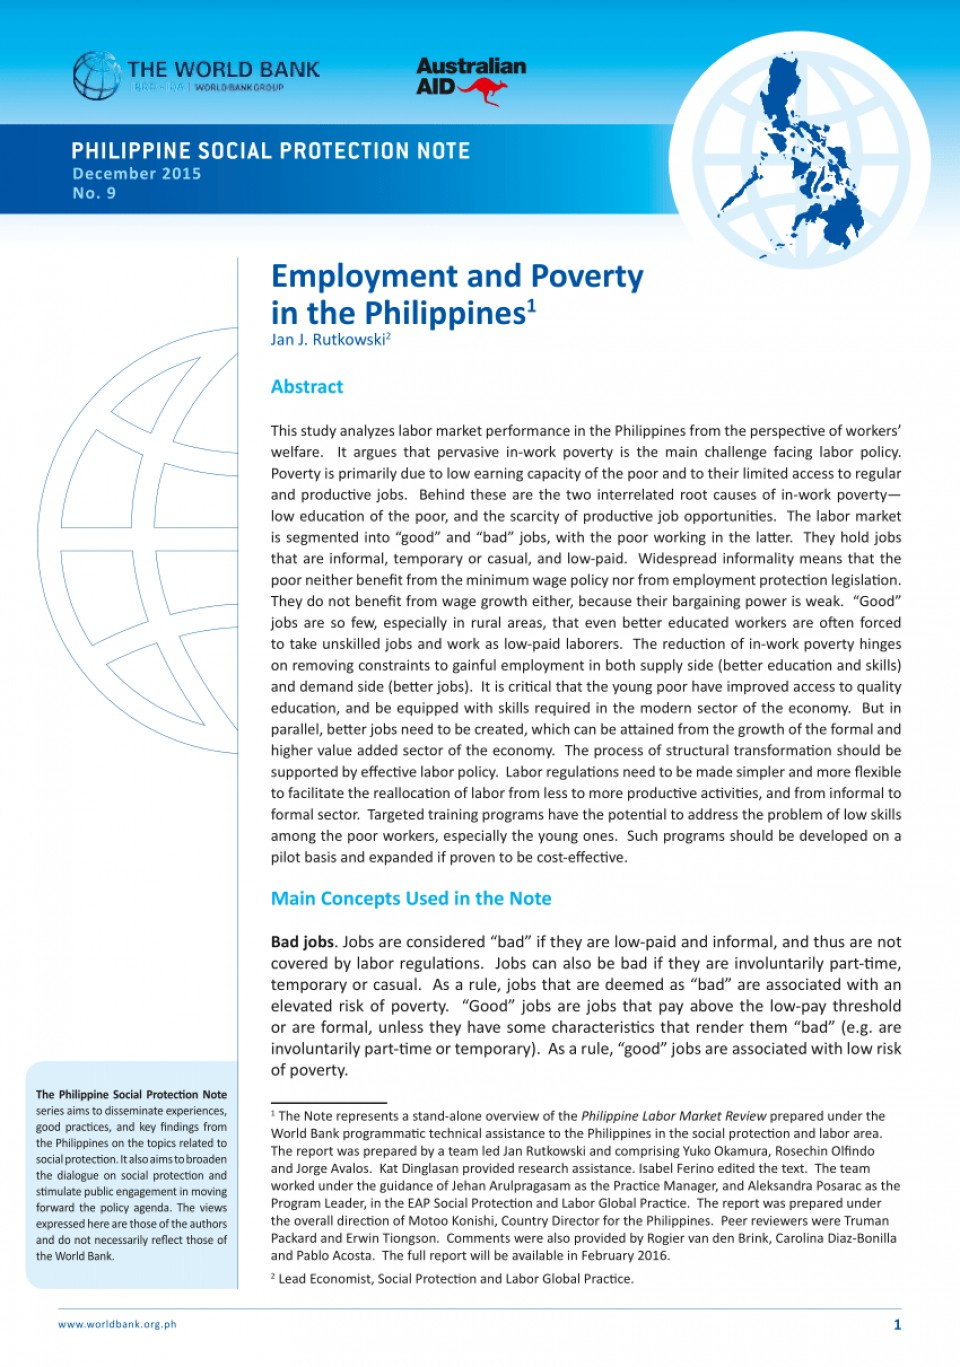 006 Research Paper Largepreview Poverty In The Philippines Impressive Pdf 960